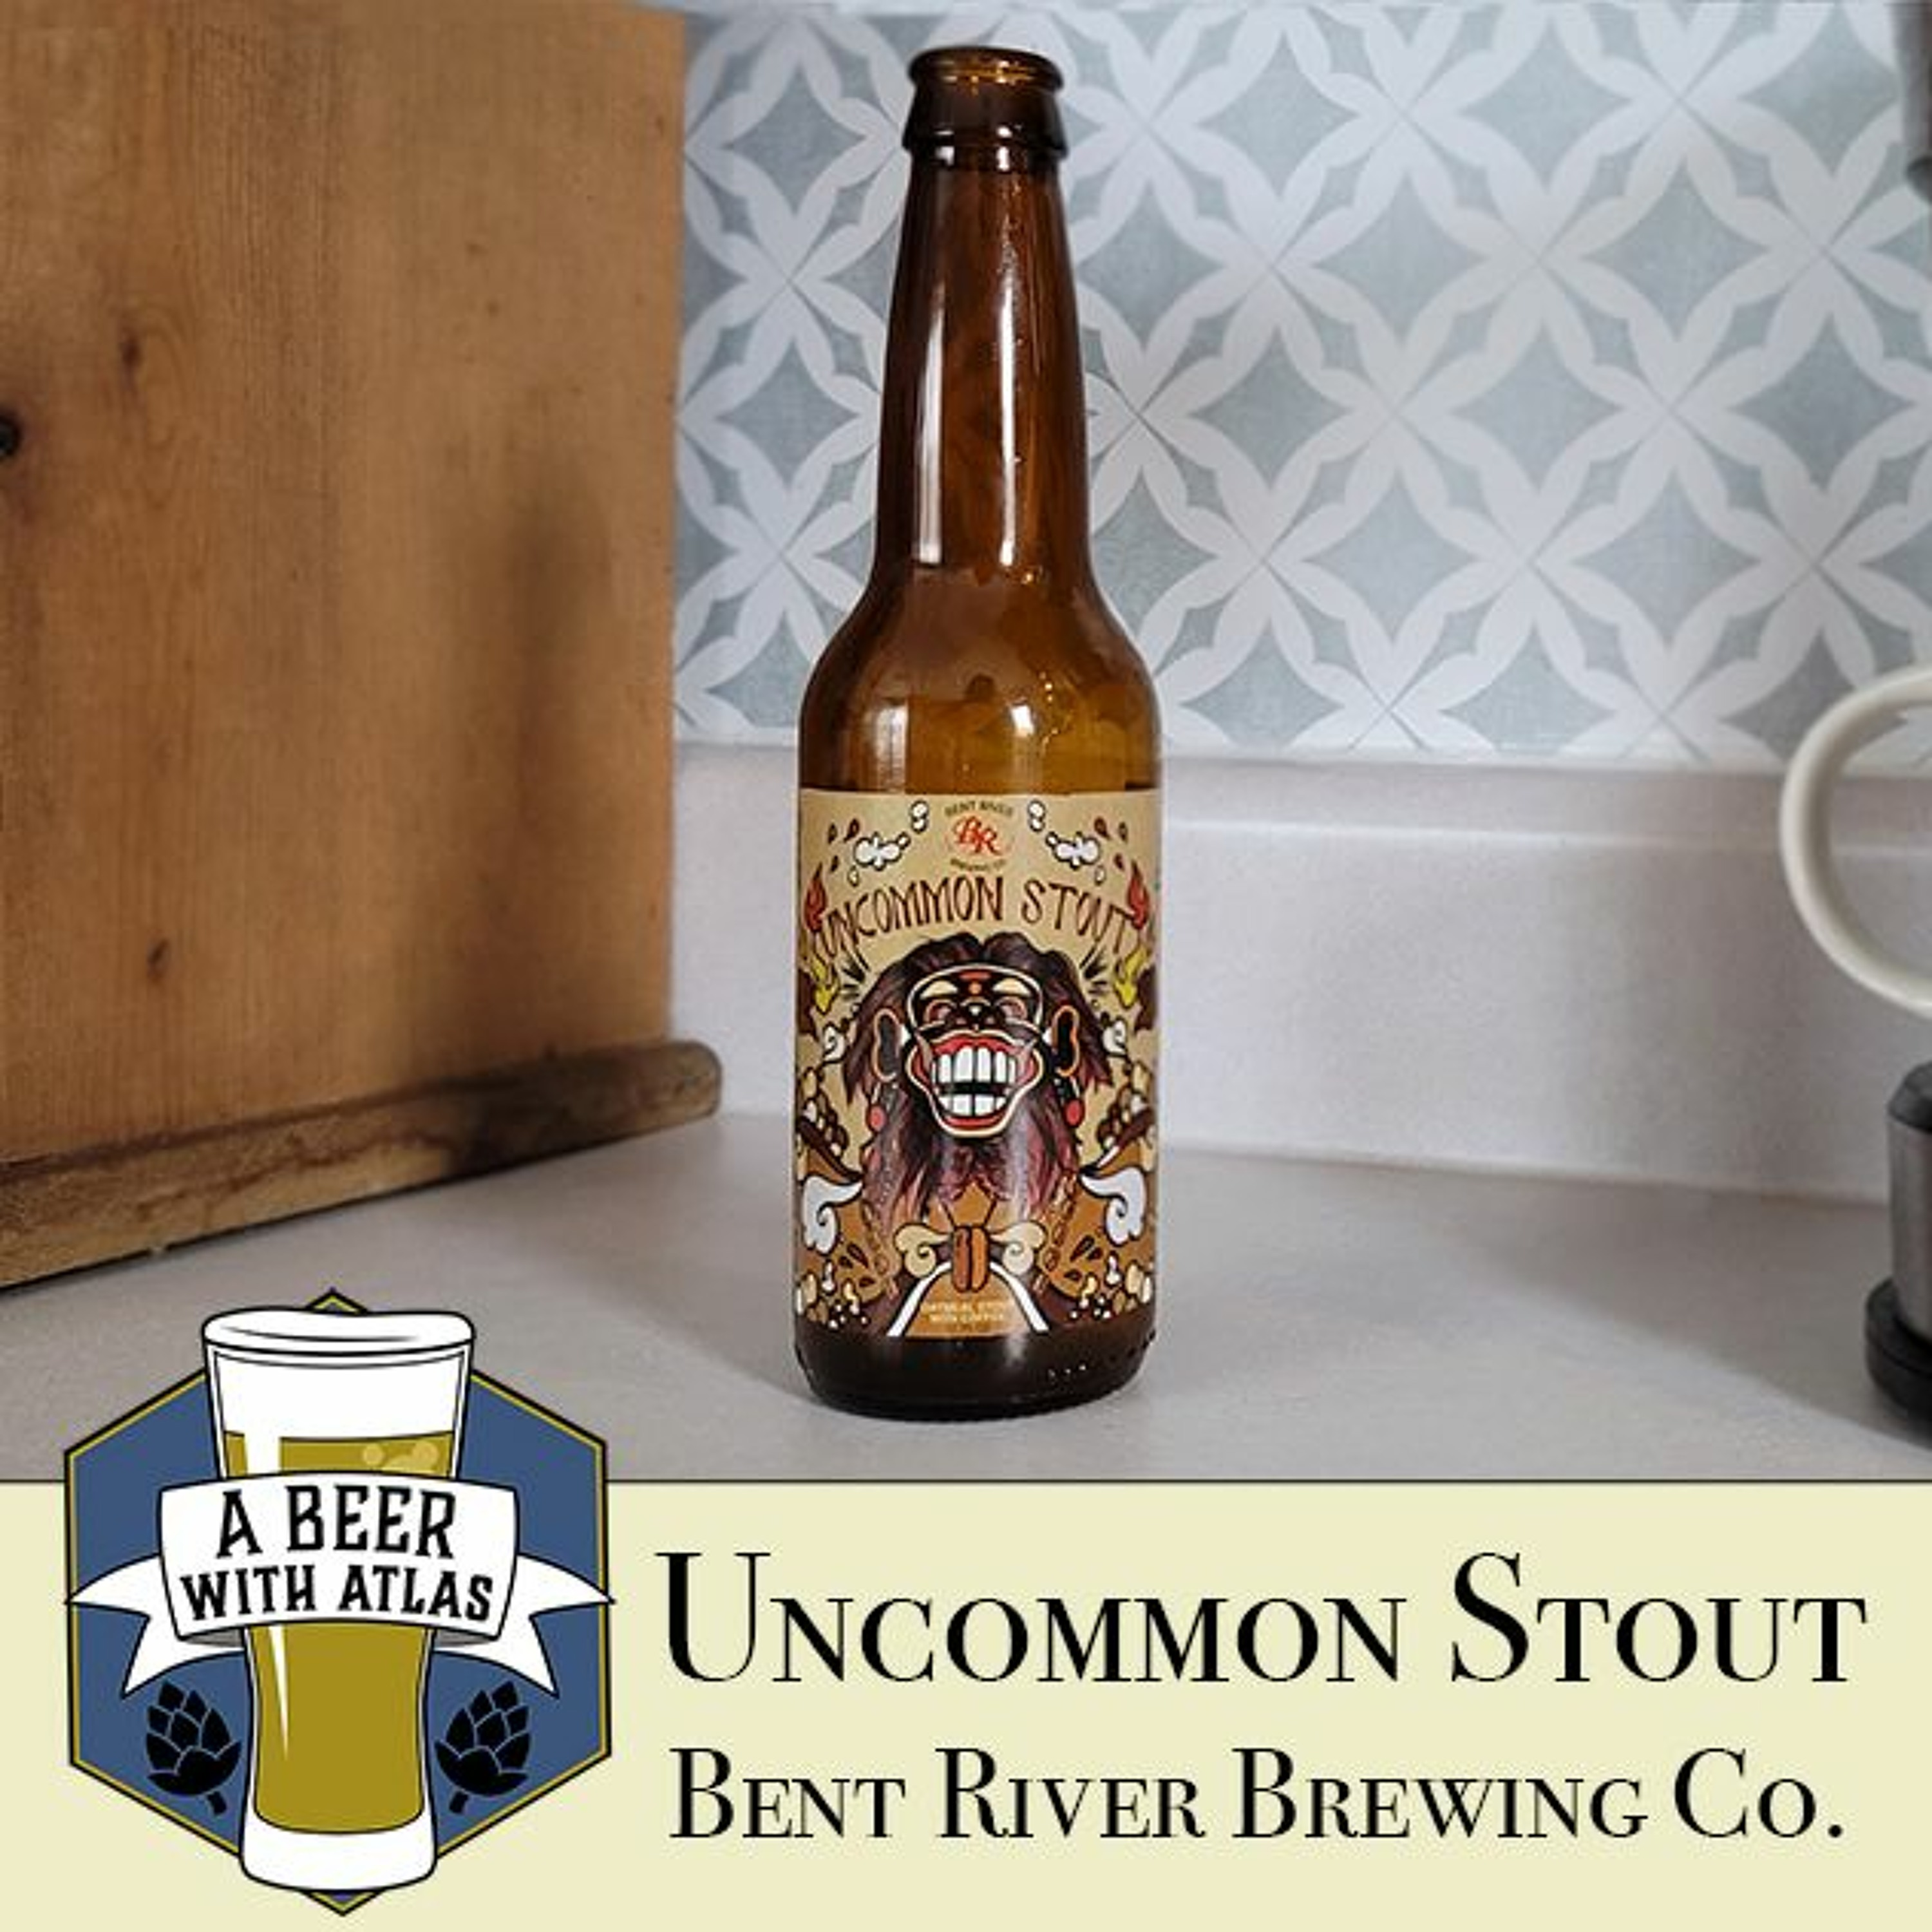 Uncommon Stout, Bent River Brewing Company - A Beer with Atlas 137 - travel nurse beer podcast